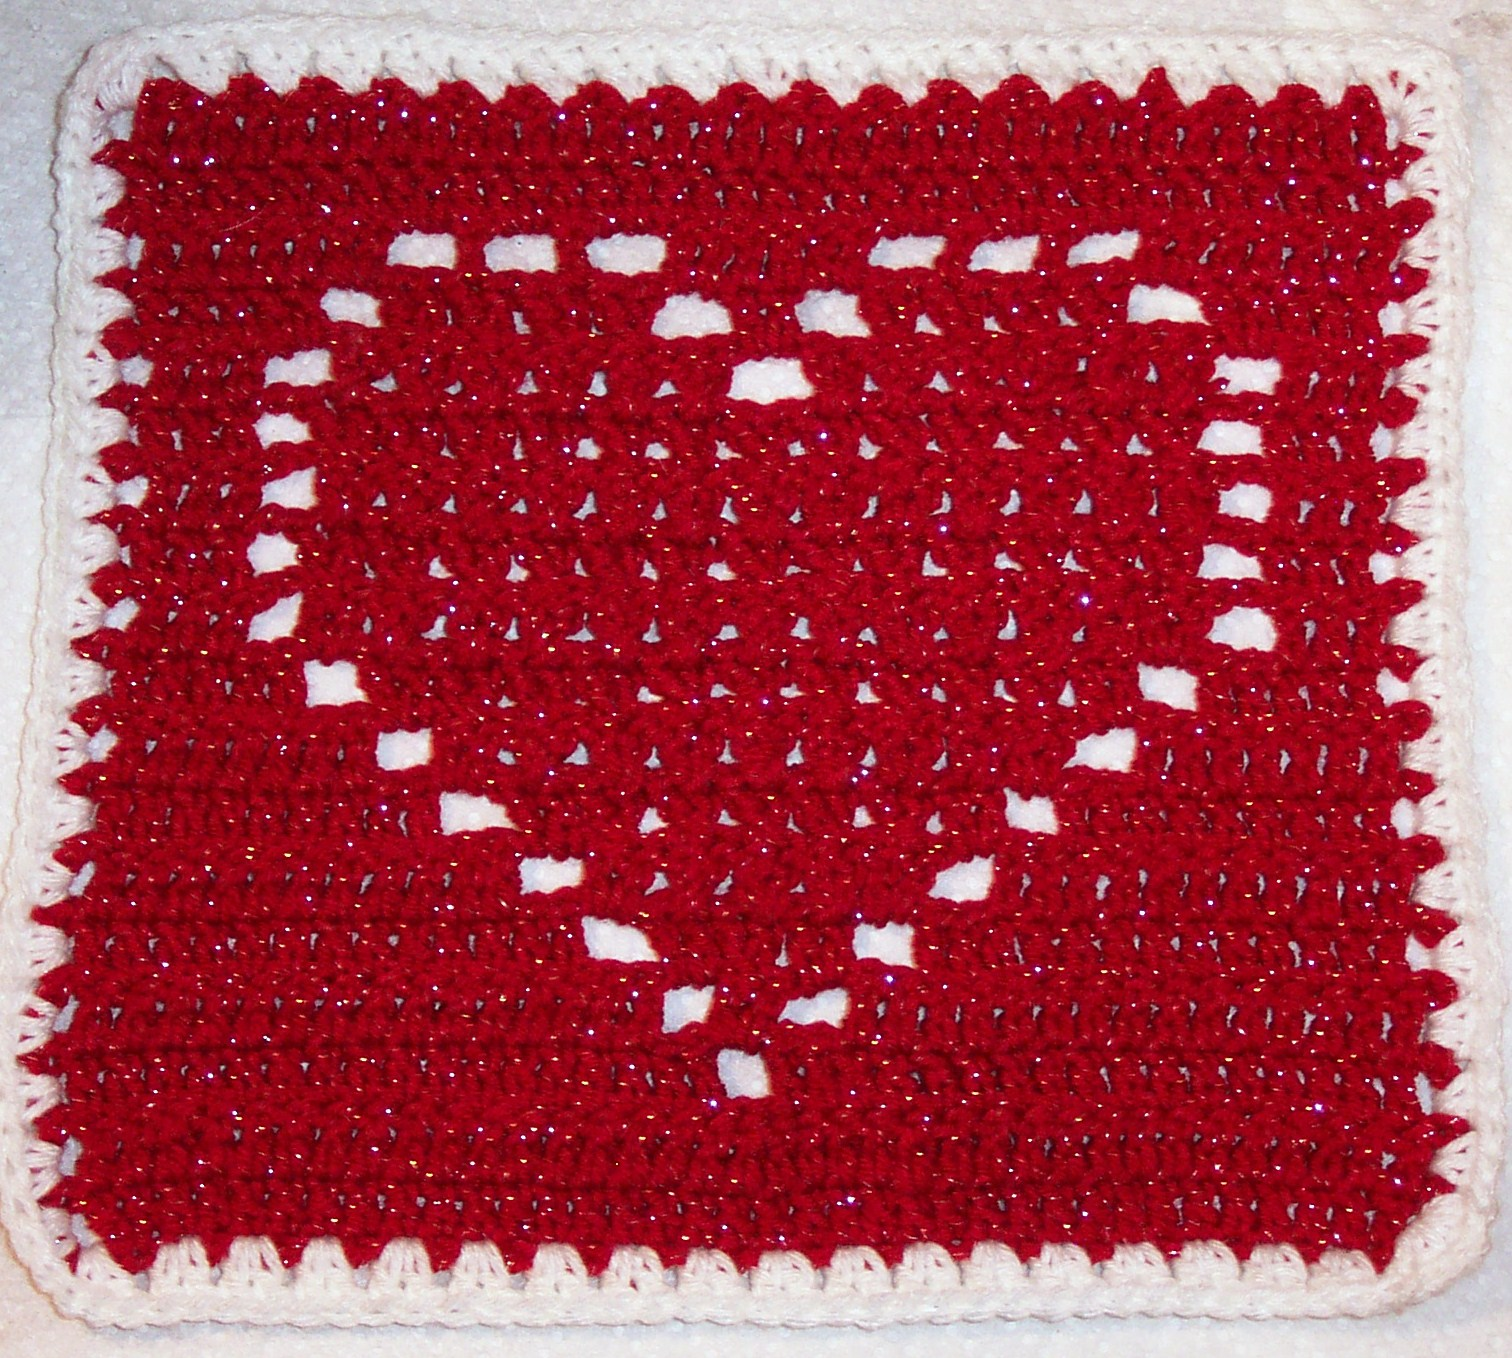 Crochet X Pattern : SmoothFox Crochet and Knit: SmoothFoxs Heart Square 12x12